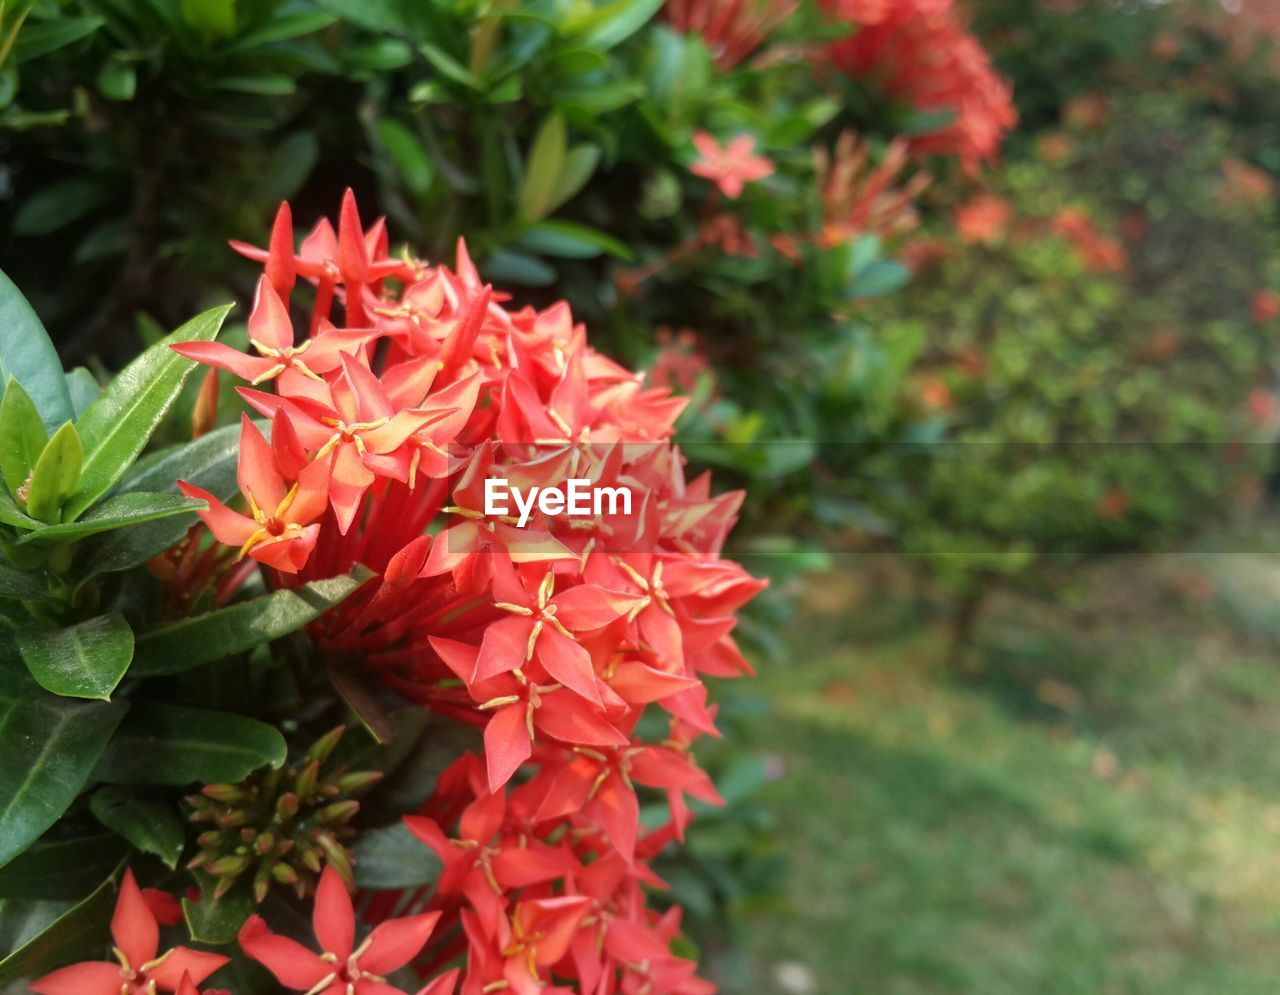 flowering plant, flower, plant, growth, petal, beauty in nature, freshness, fragility, vulnerability, flower head, close-up, inflorescence, red, focus on foreground, nature, day, green color, no people, plant part, leaf, outdoors